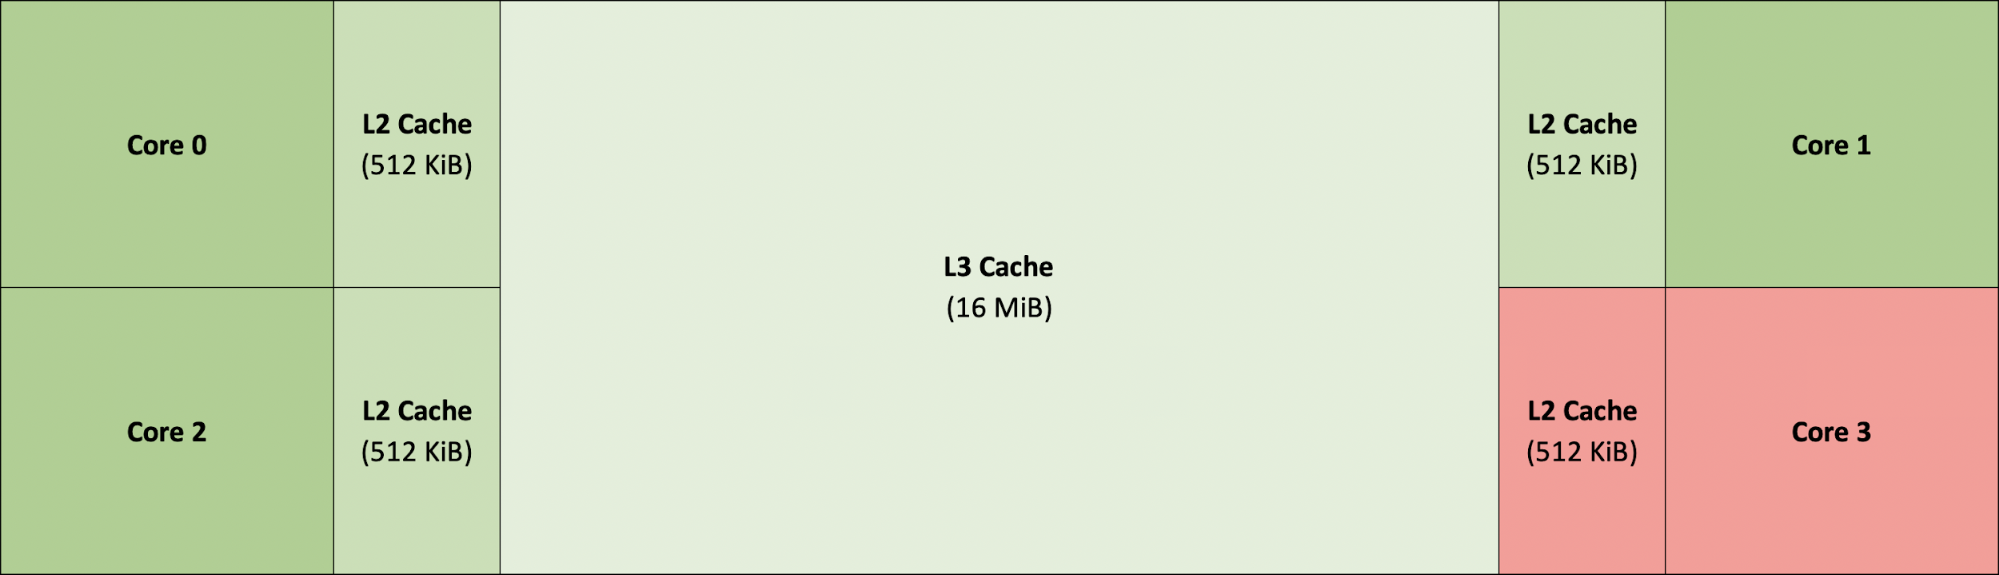 Impact of Cache Locality